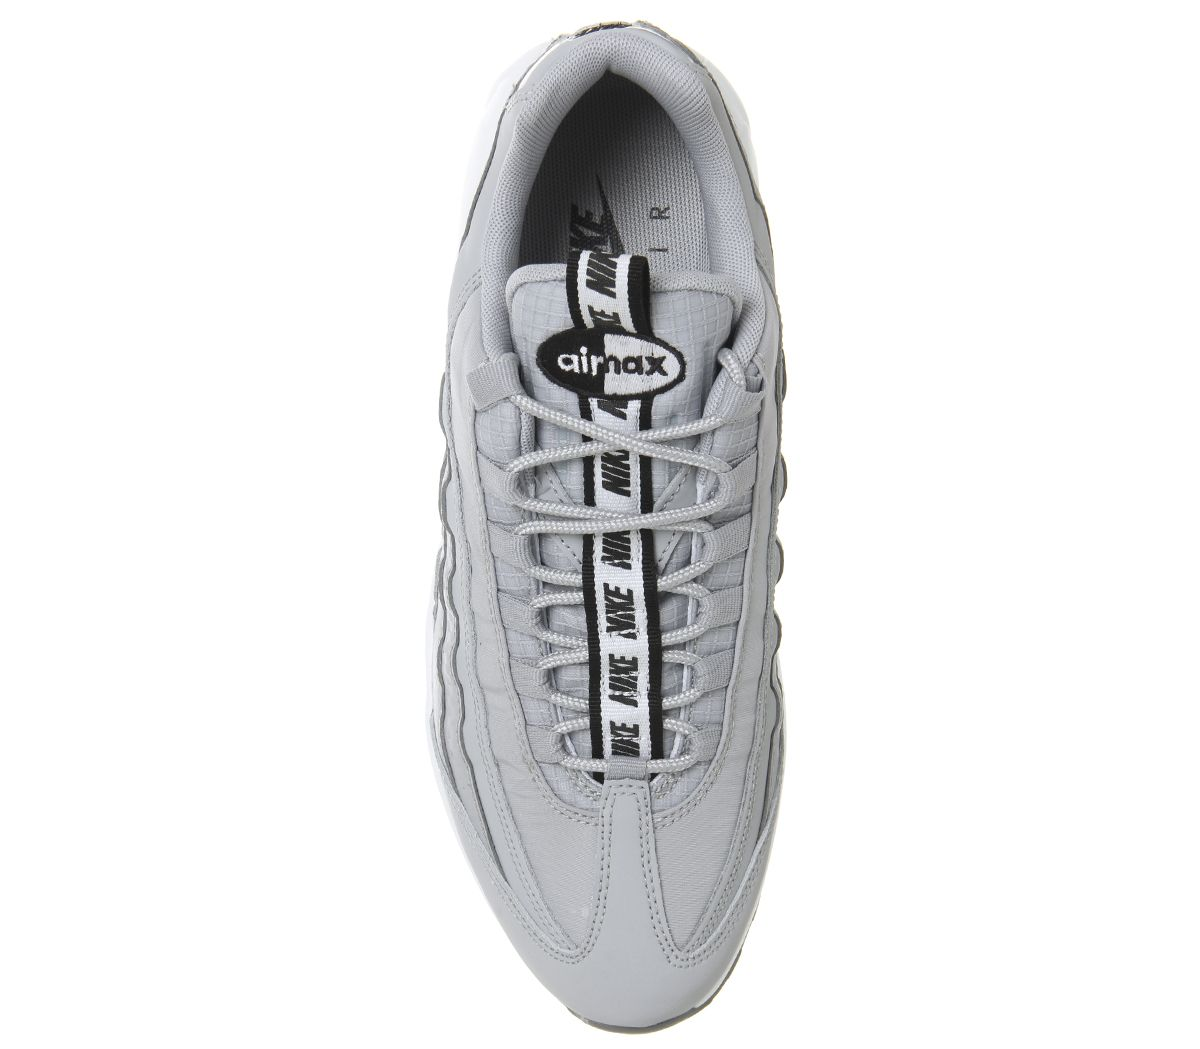 0cff7f2ced Air Max 95 Trainers. Air Max 95 Trainers. Double tap to zoom into the  image. Nike, Air Max 95 Trainers, Wolf Grey Black White Cool ...